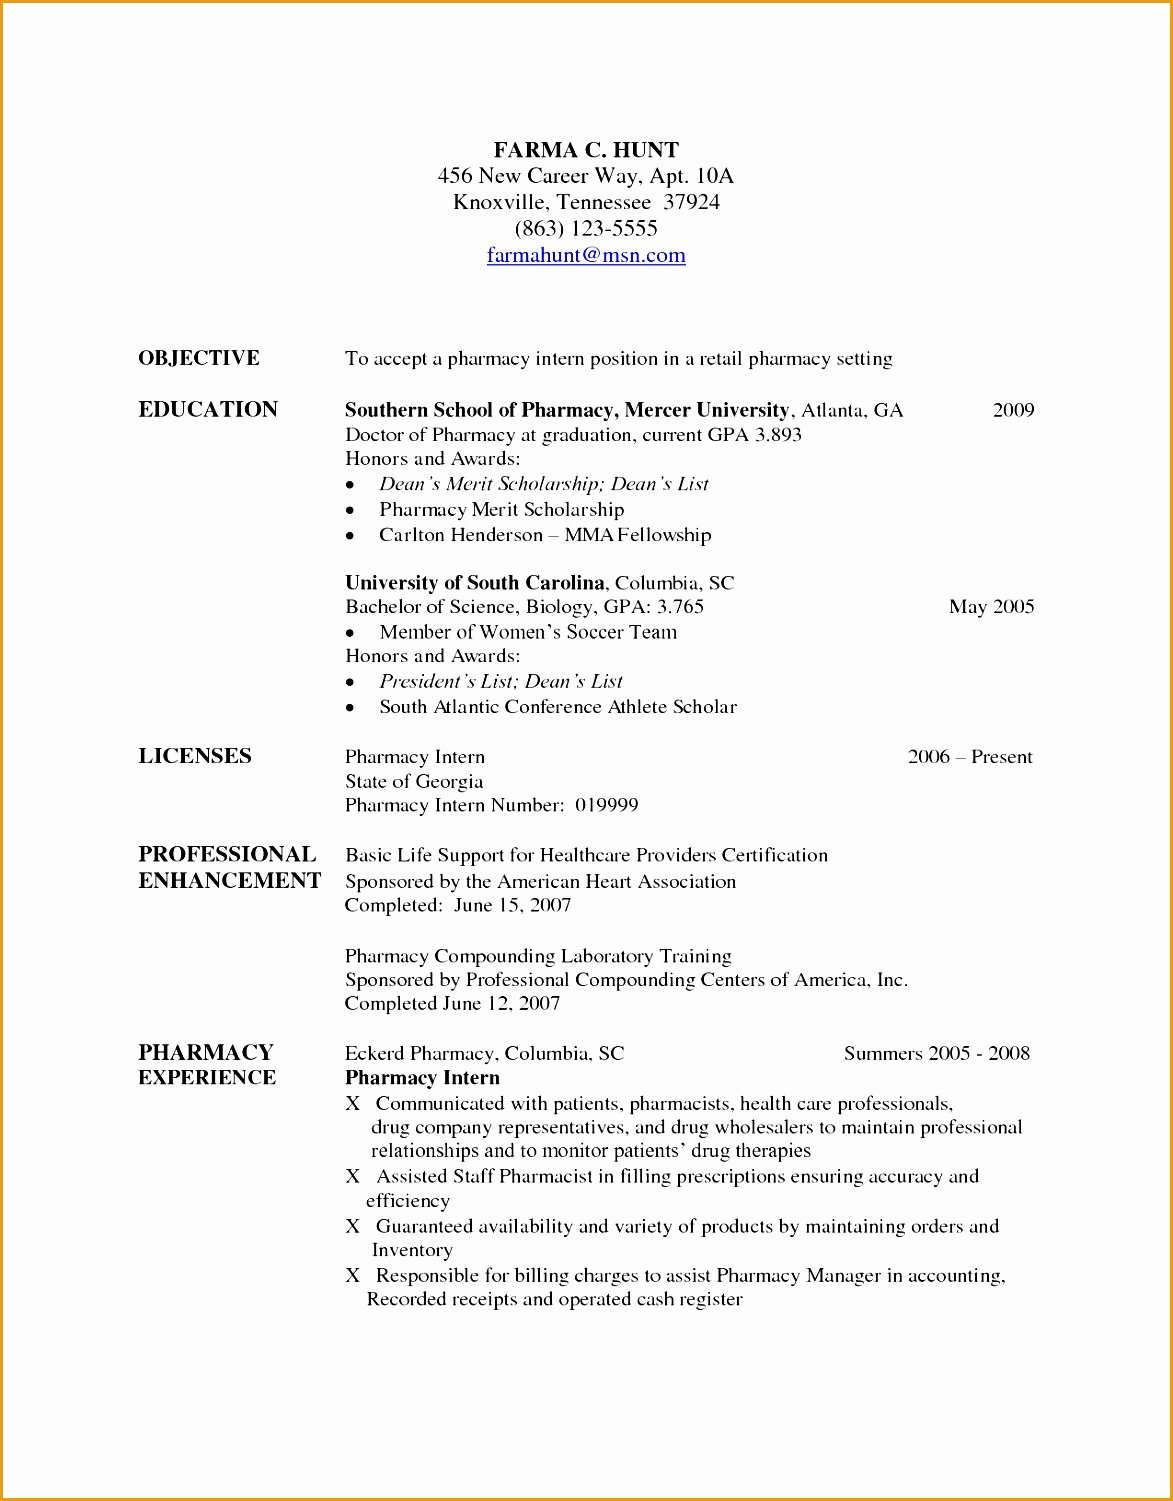 Pharmacist Curriculum Vitae Template Best Of 7 Pharmacist Curriculum Vitae Templates Free Samples Examples & format Resume Curruculum